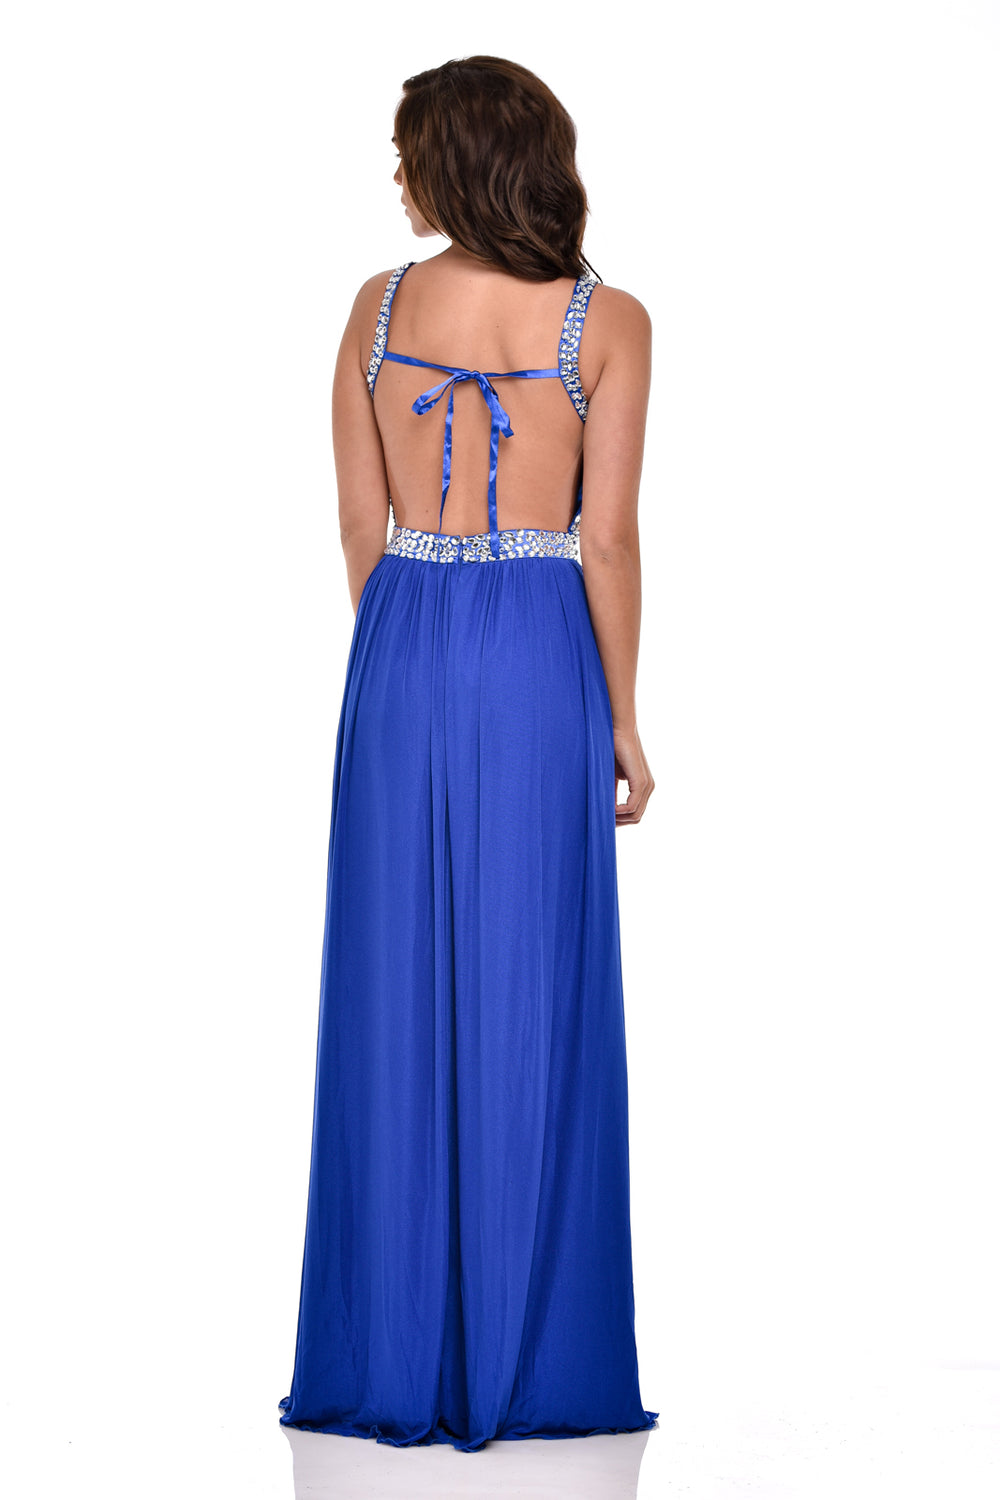 Nola Royal Blue Backless Maxi Grecian Dress